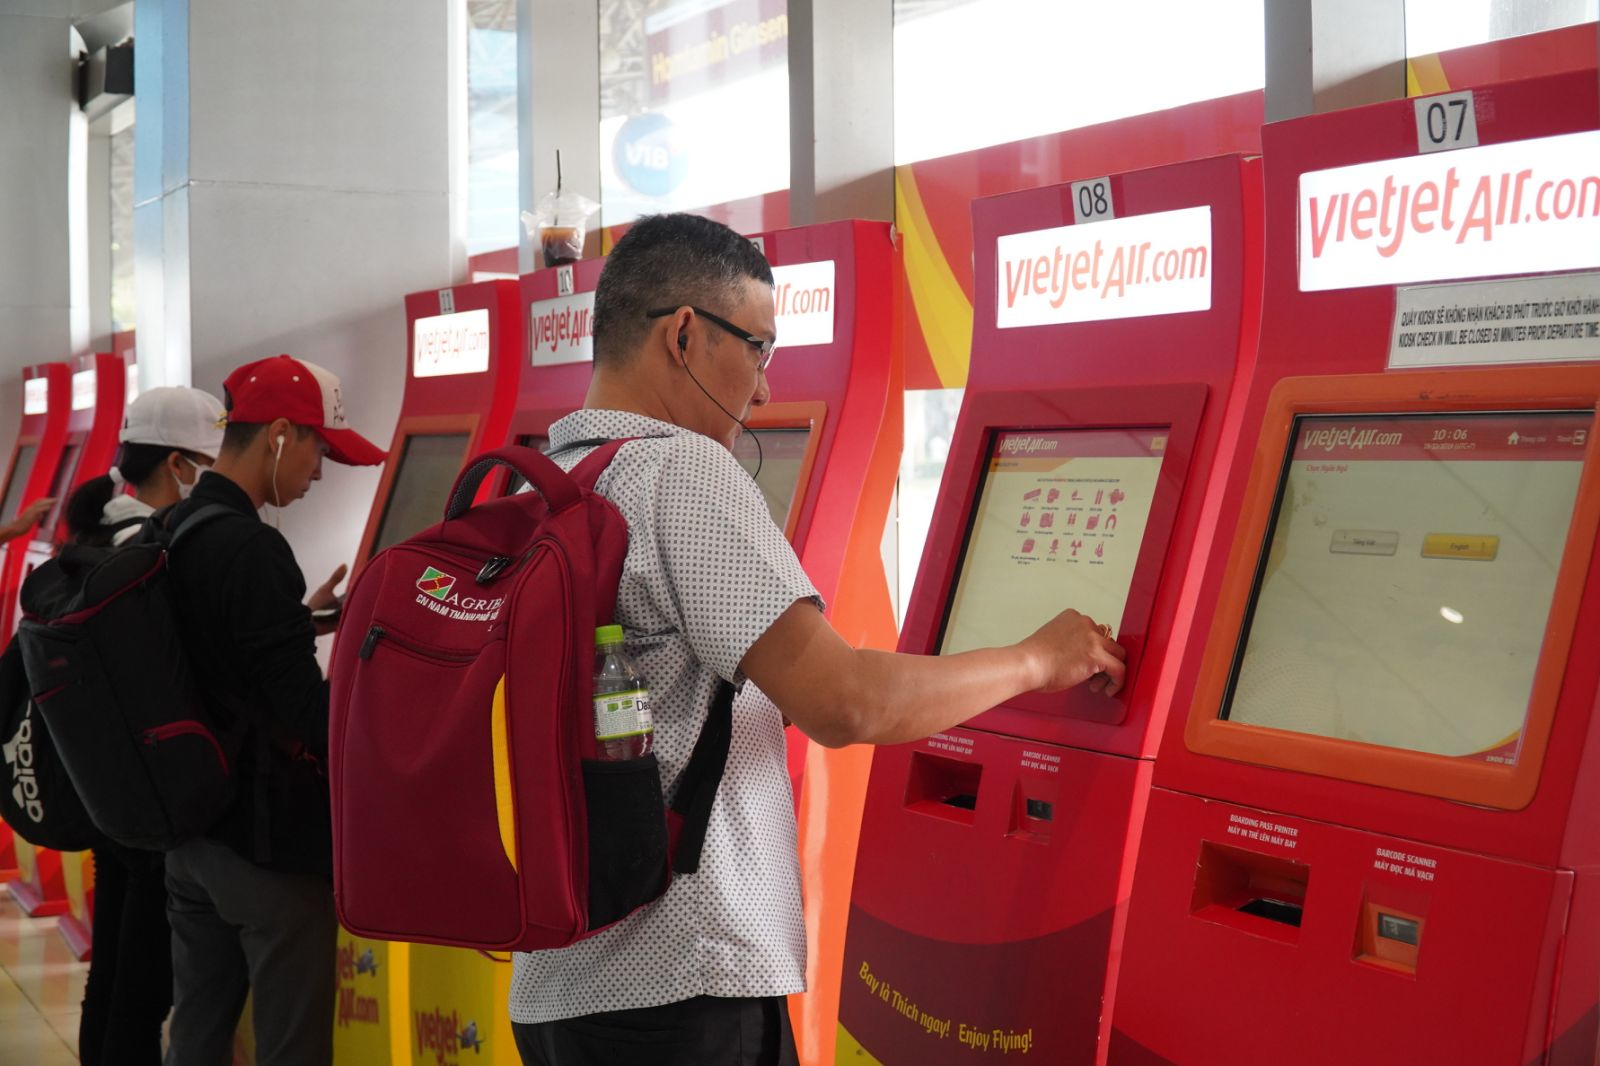 Vietnamese airlines boost online services amid fast-growing trend